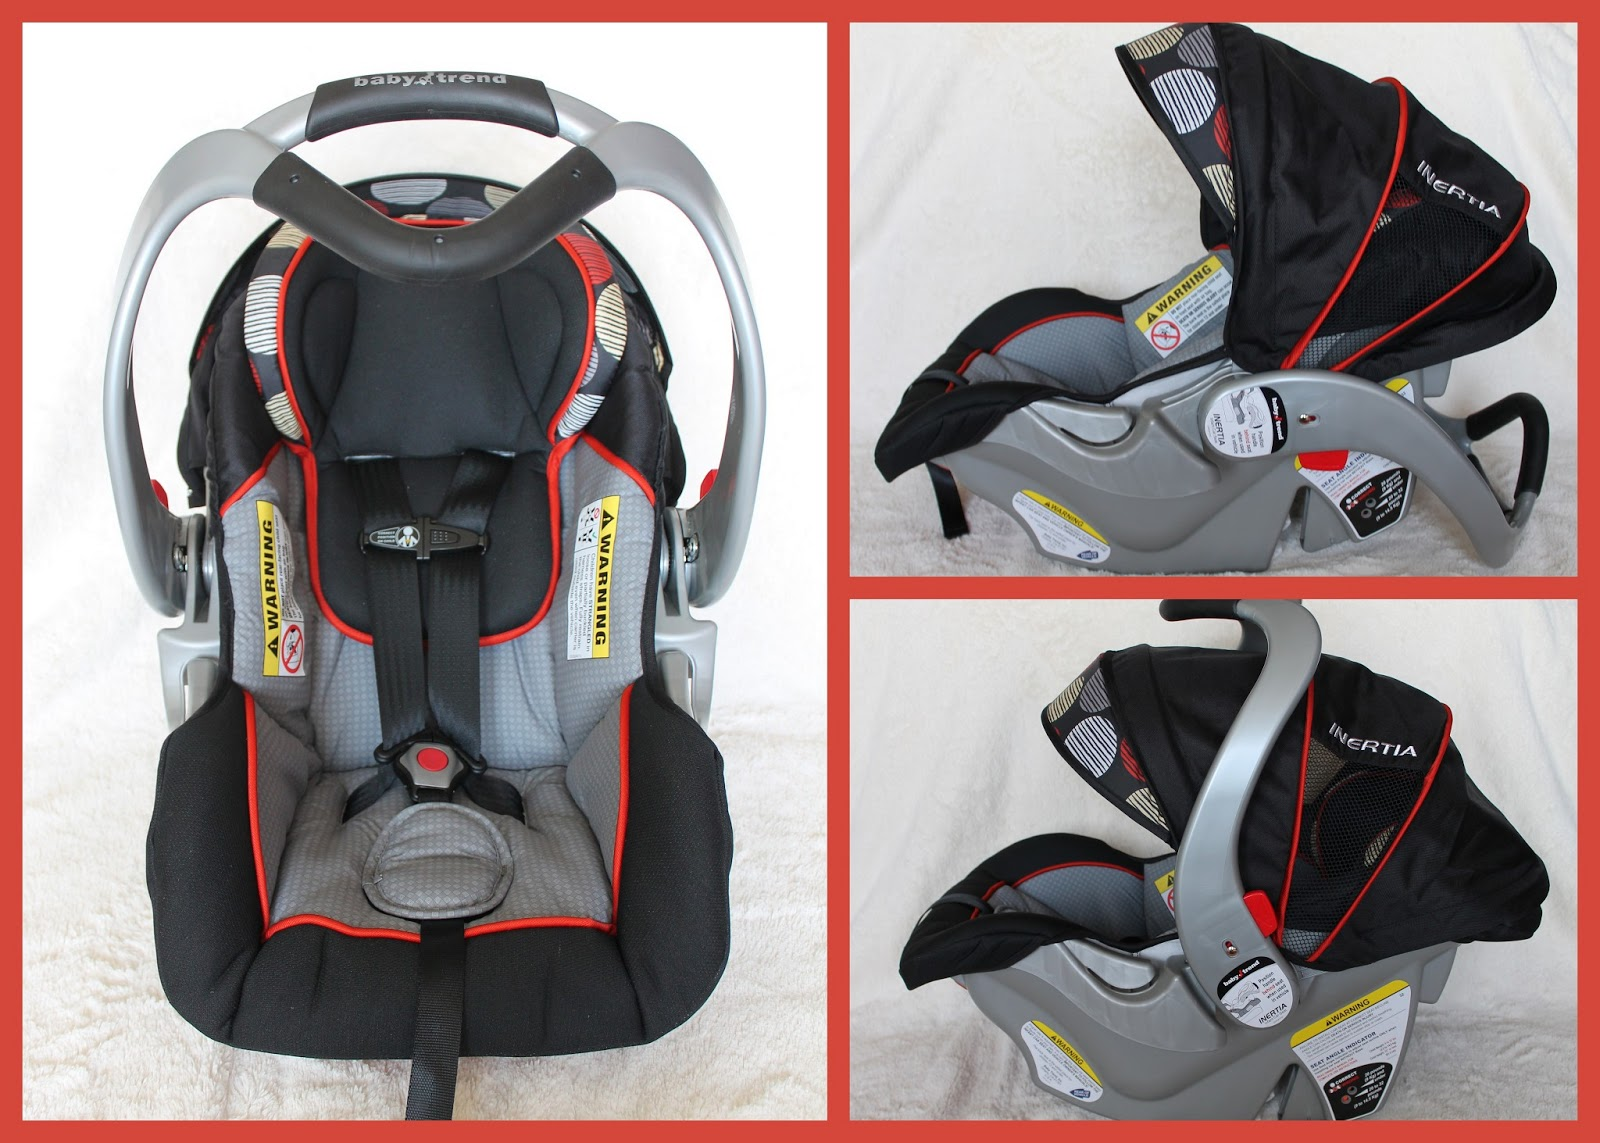 Graco Buckle Recall >> when does my graco car seat expire | Brokeasshome.com